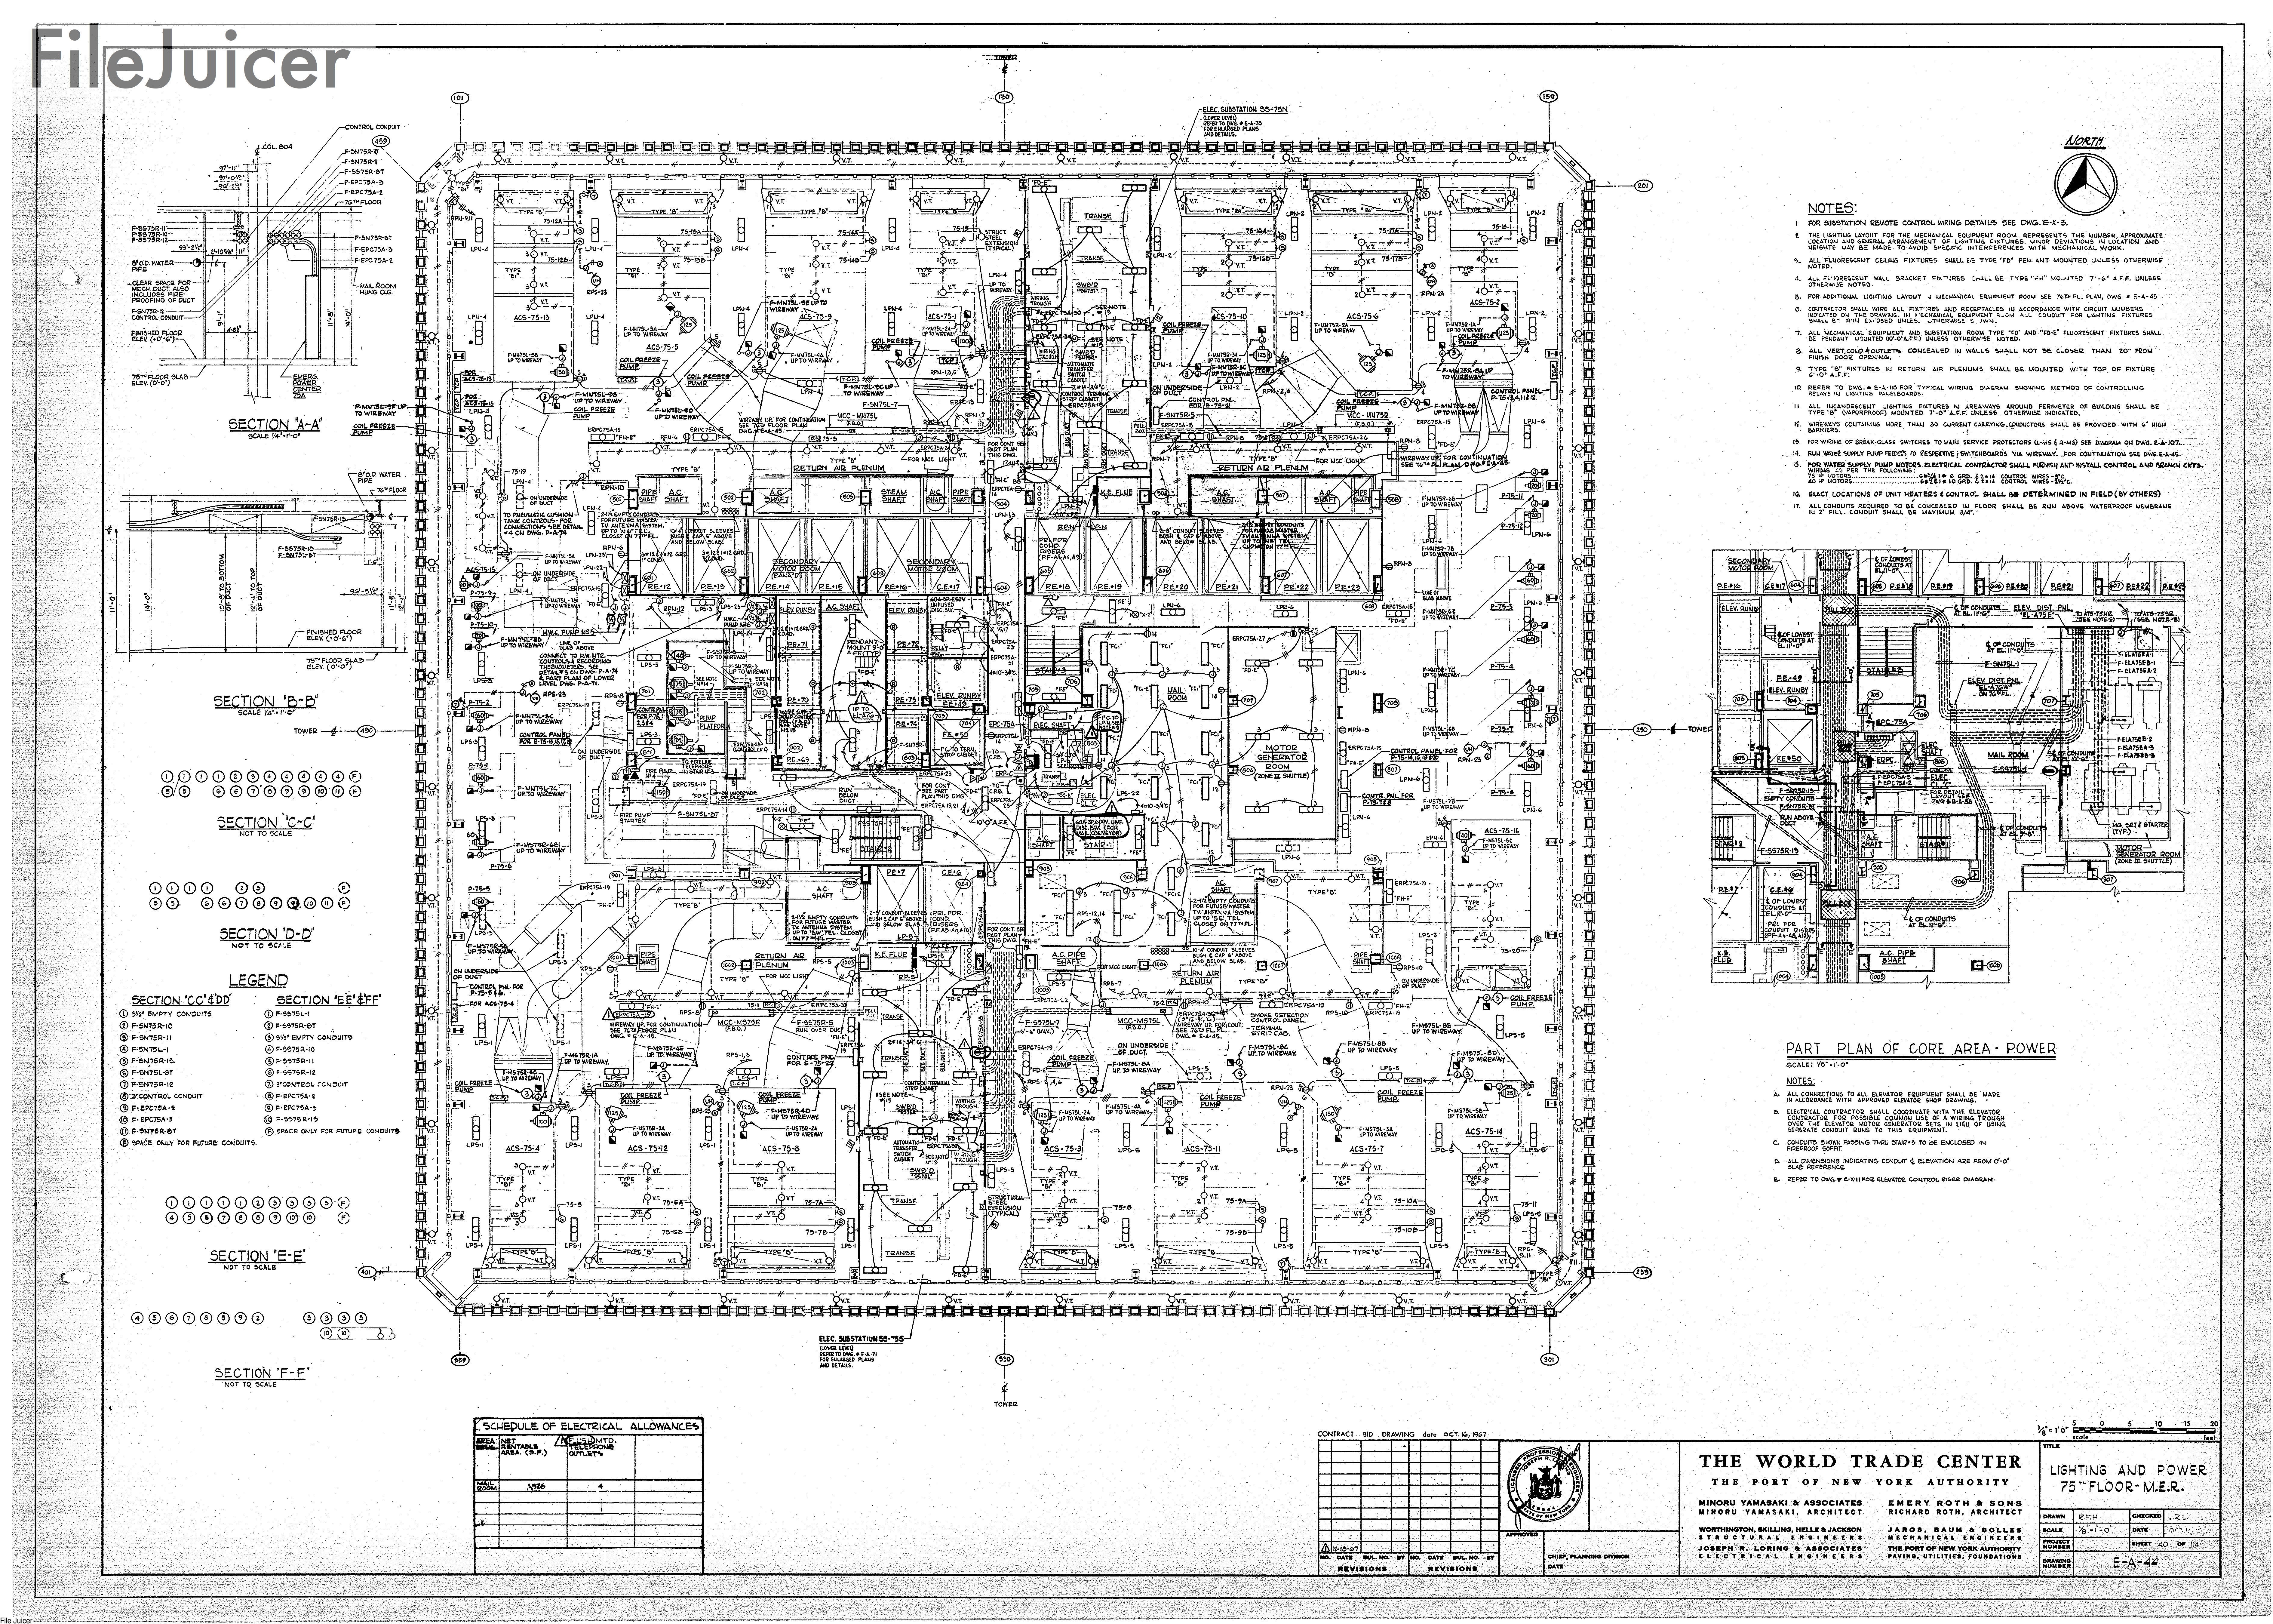 Old fashioned mcc panel design pdf motif everything you need to outstanding mcc panel design pdf adornment electrical diagram cheapraybanclubmaster Image collections